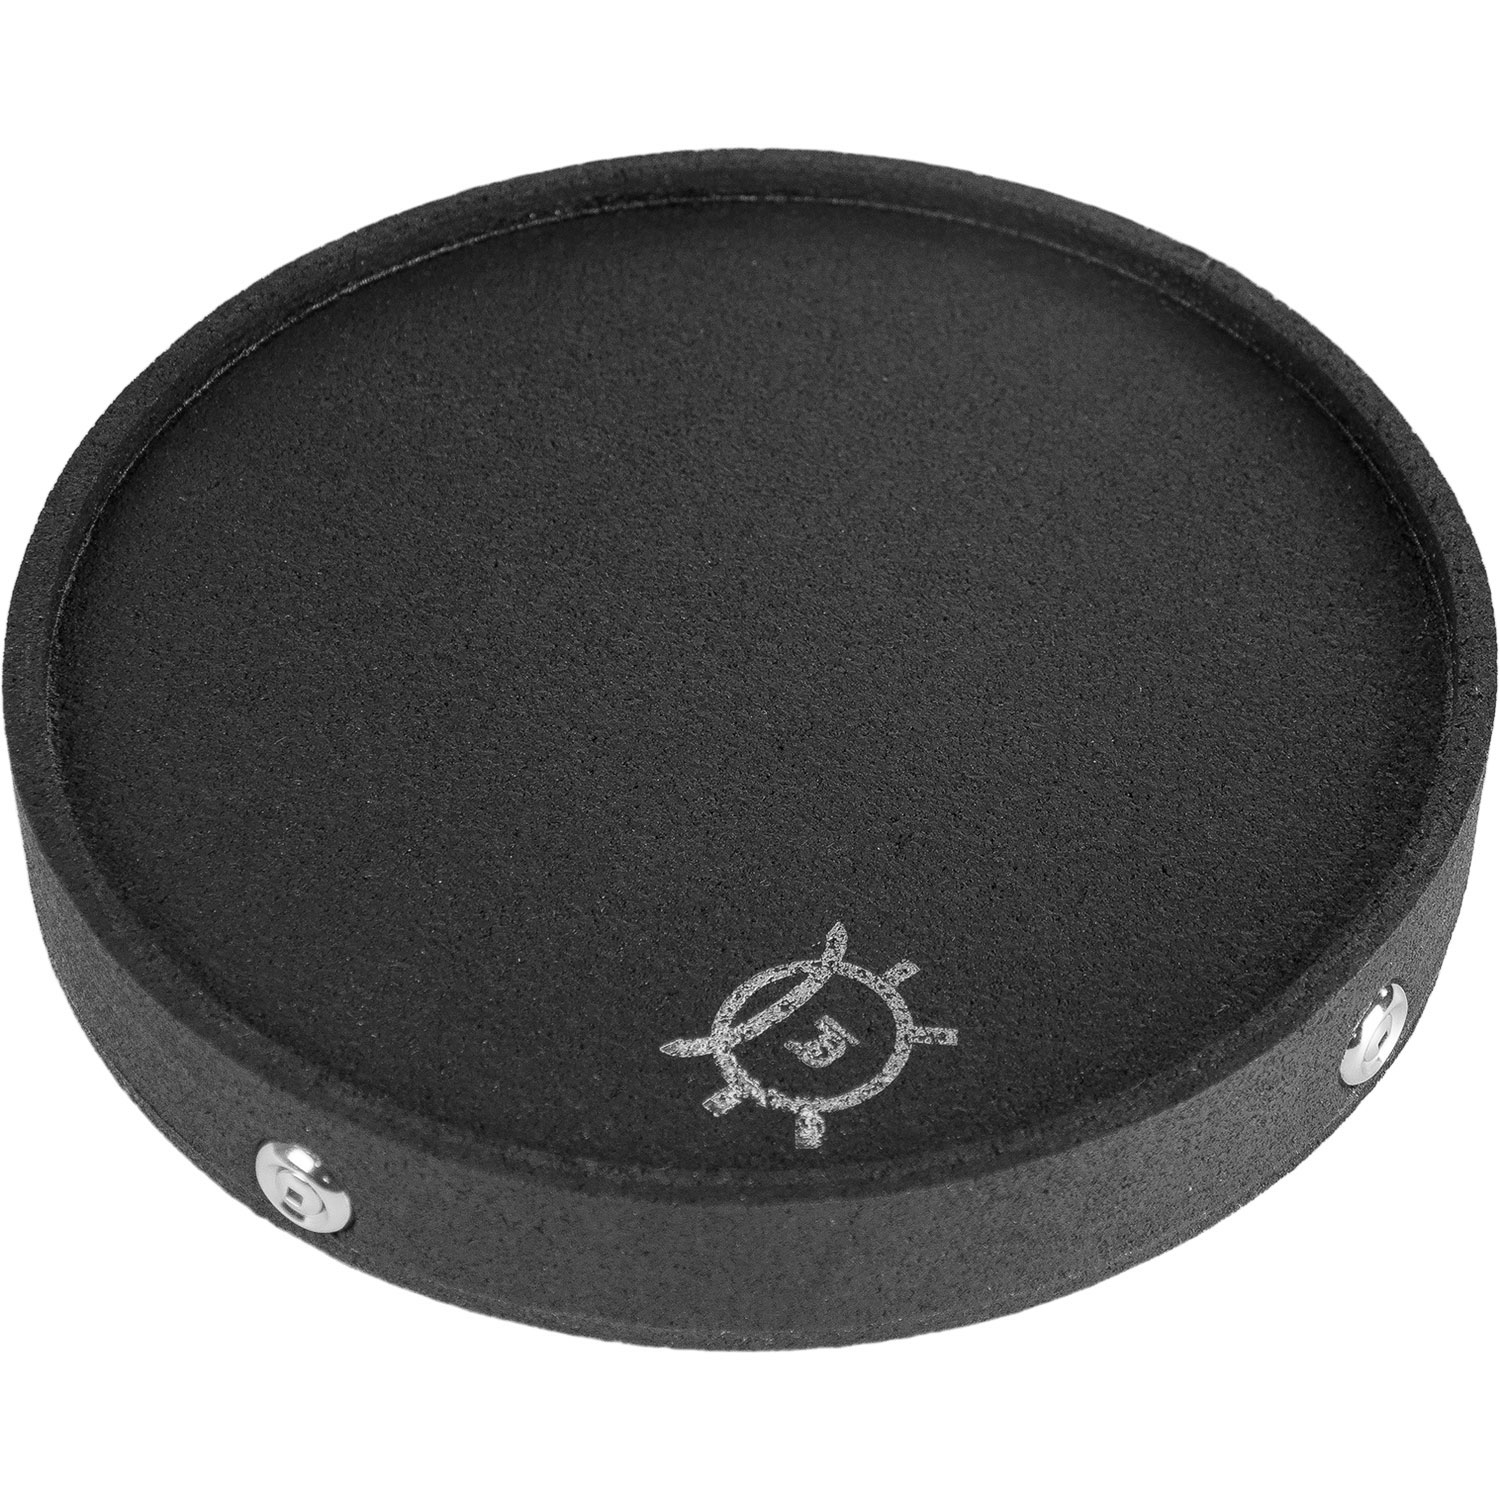 beetle percussion 13 5 full marching practice pad m135. Black Bedroom Furniture Sets. Home Design Ideas